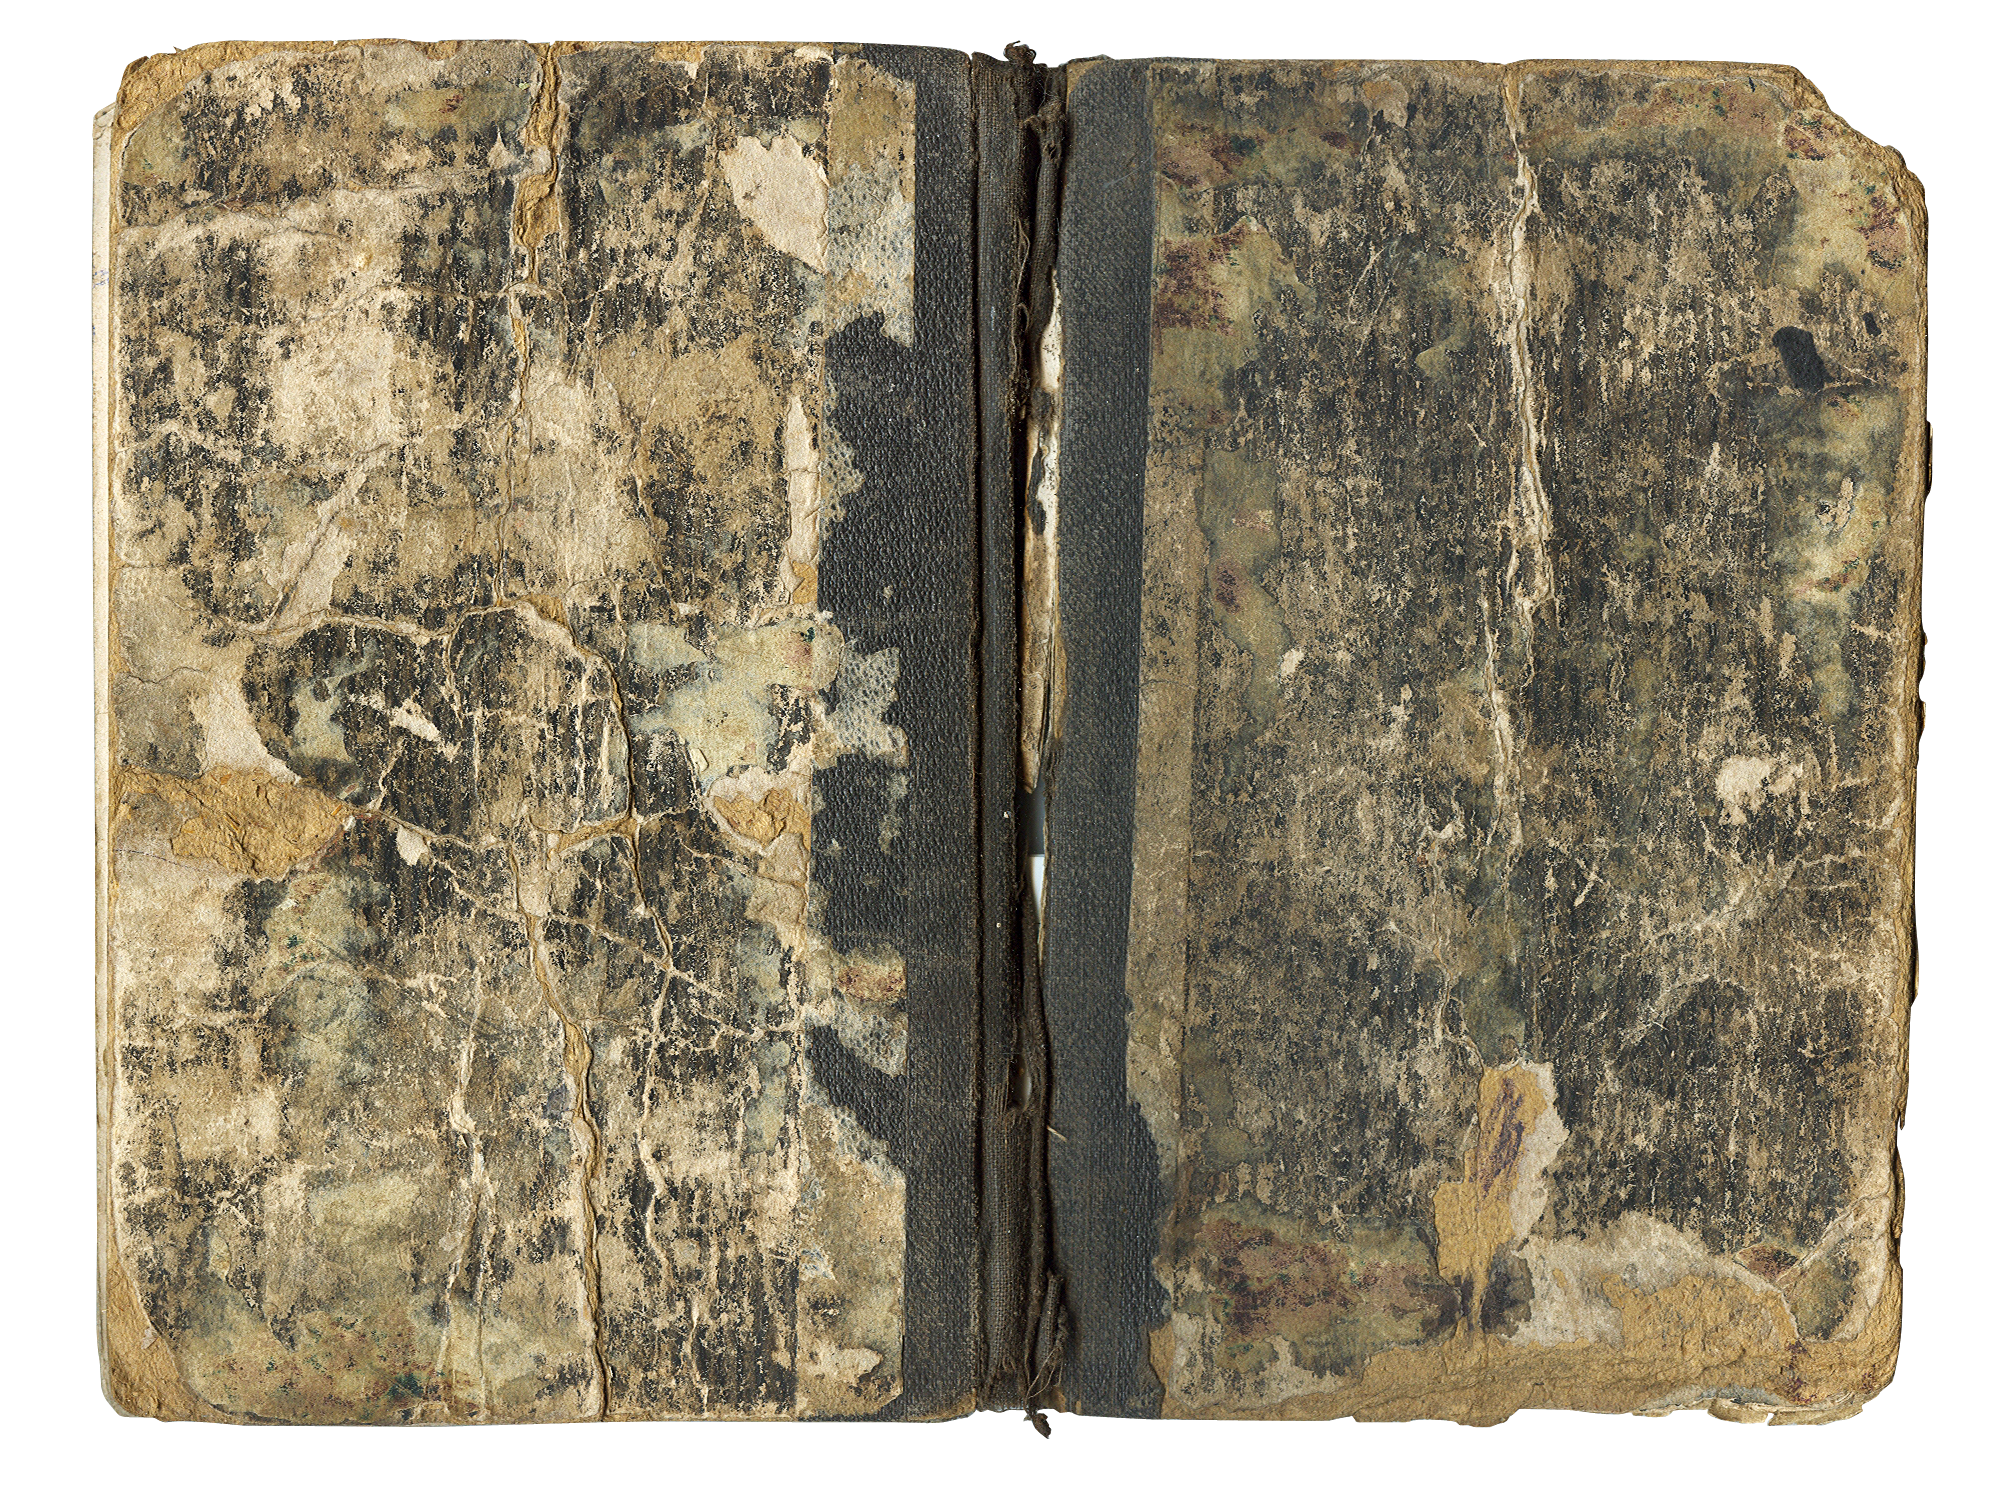 Antique Book Cover Textures ~ Antique stained book cover ii by mercurycode on deviantart